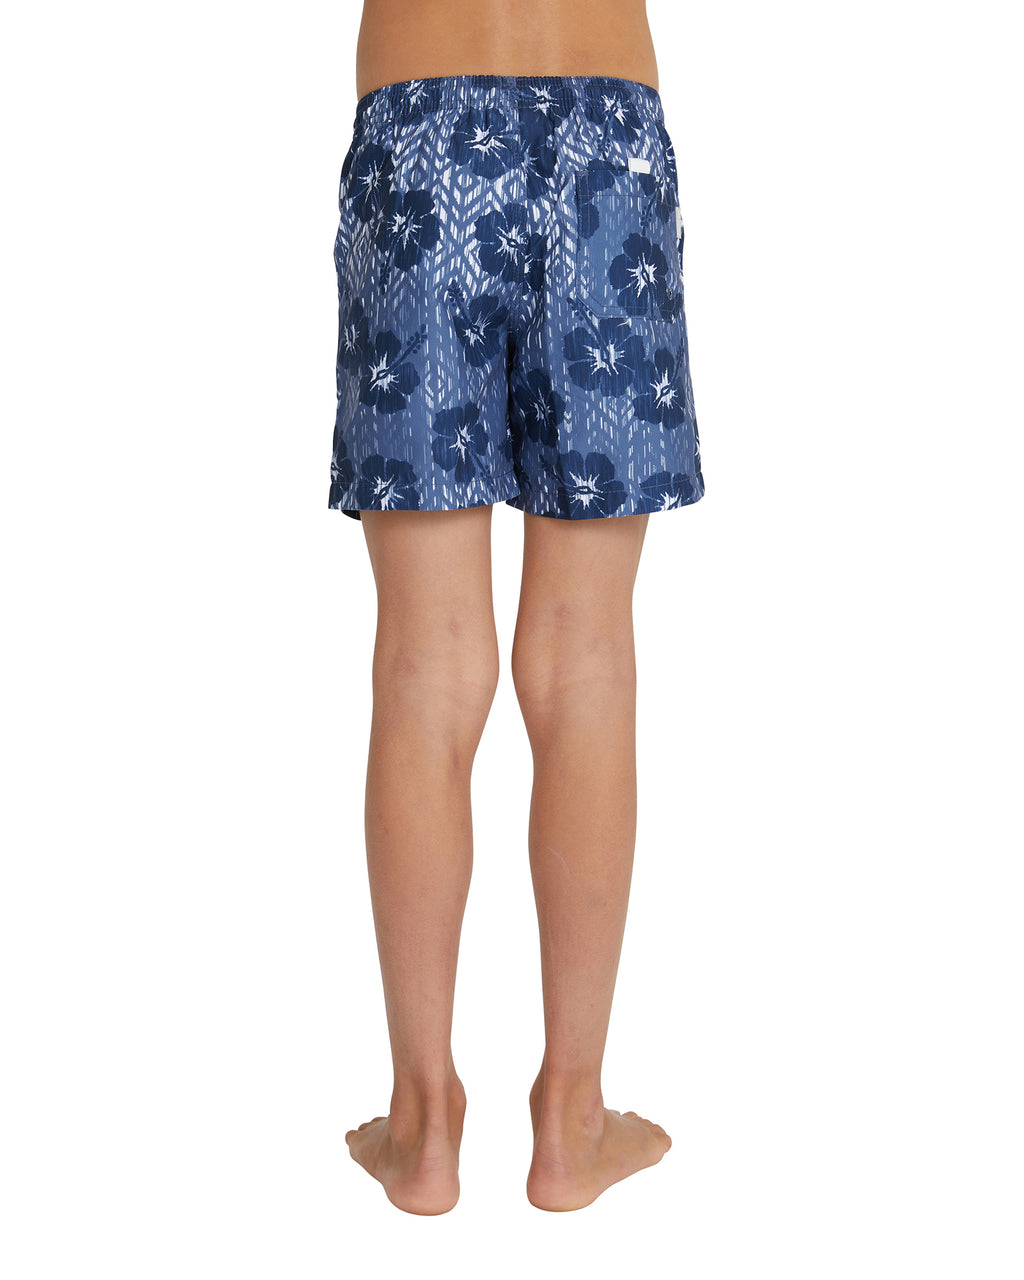 Kids Swim Short - Ikat - Navy